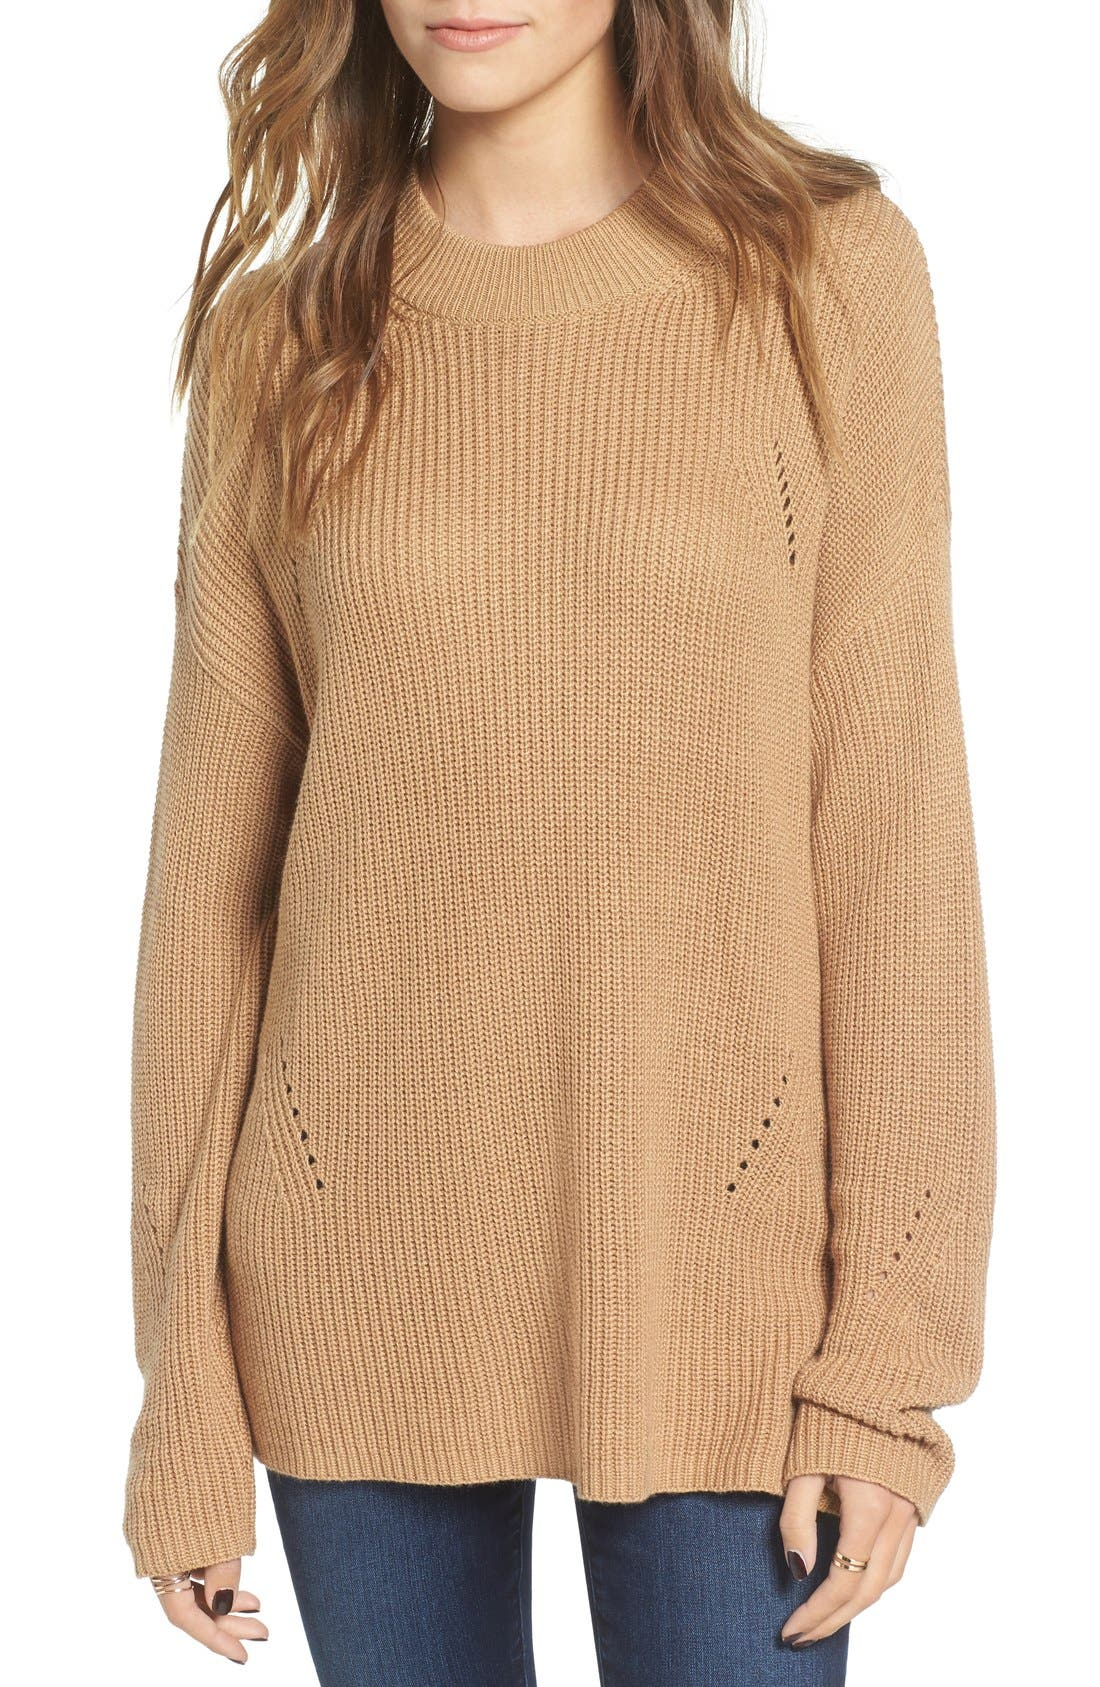 Alternate Image 1 Selected - BP. Side Buckle Knit Pullover